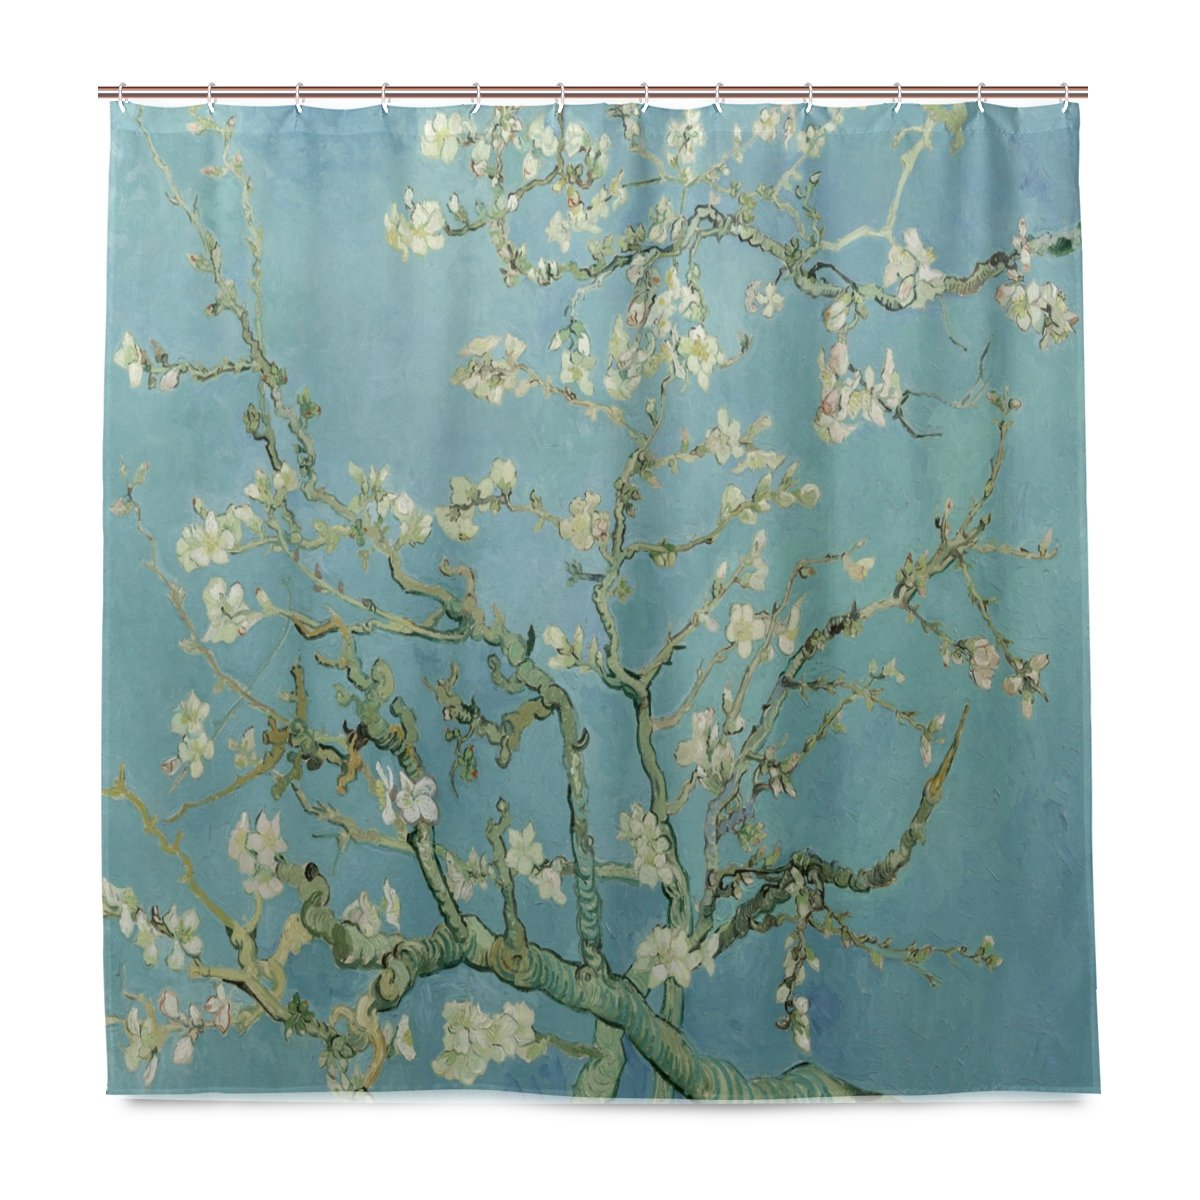 ISAOA Van Gogh Painting Shower Curtain Waterproof Mildew Resistant Anti-Bacterial Personalized Design Polyester Fabric Curtain for Bathroom, 180x180cm with 12 hooks